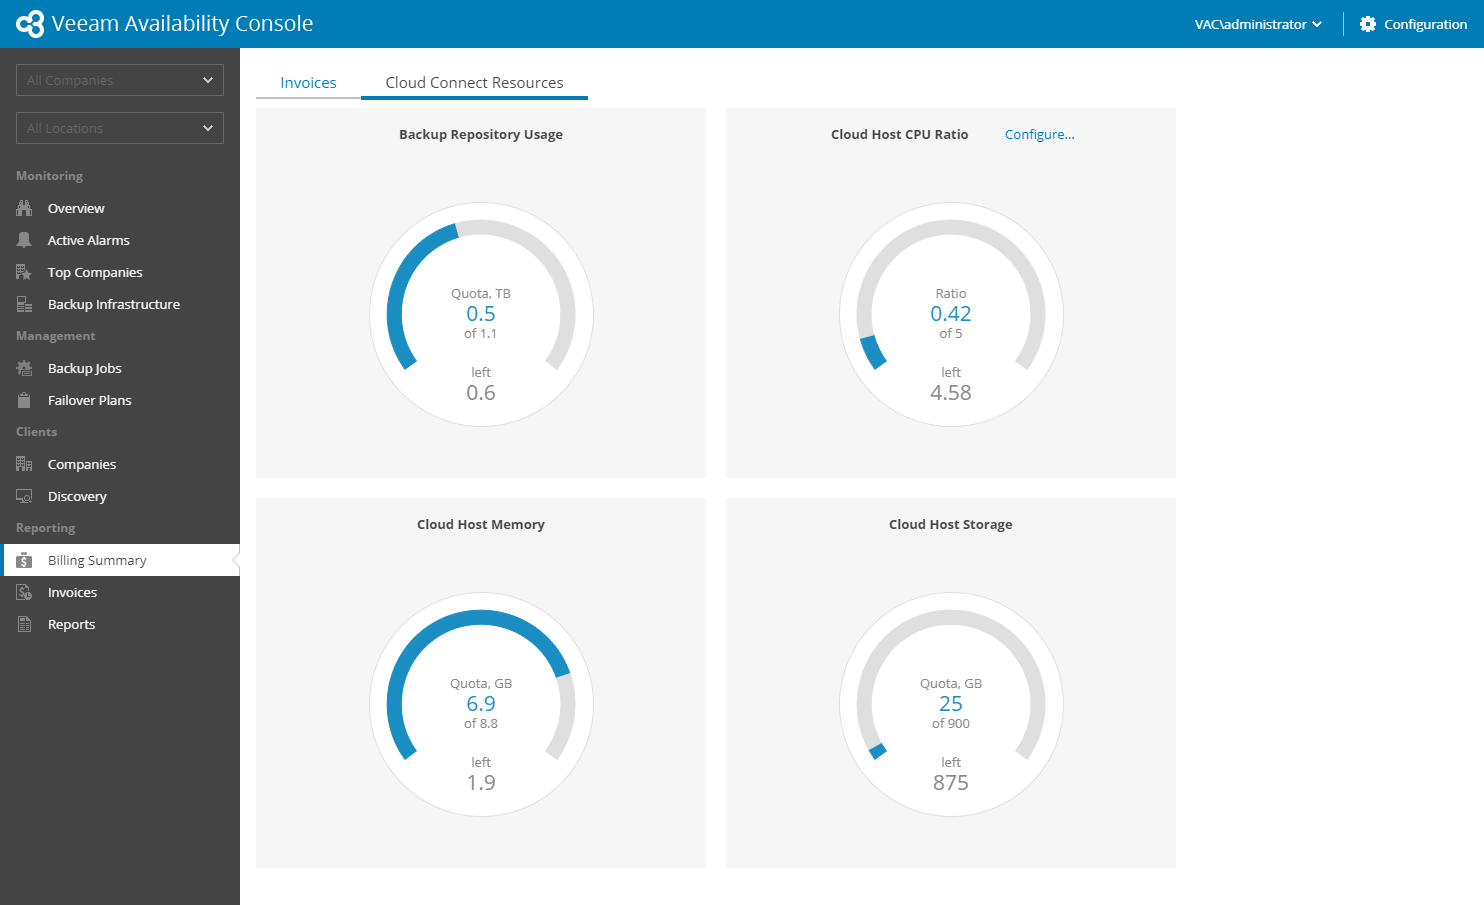 Monitor Cloud Connect resource consumption by managed clients